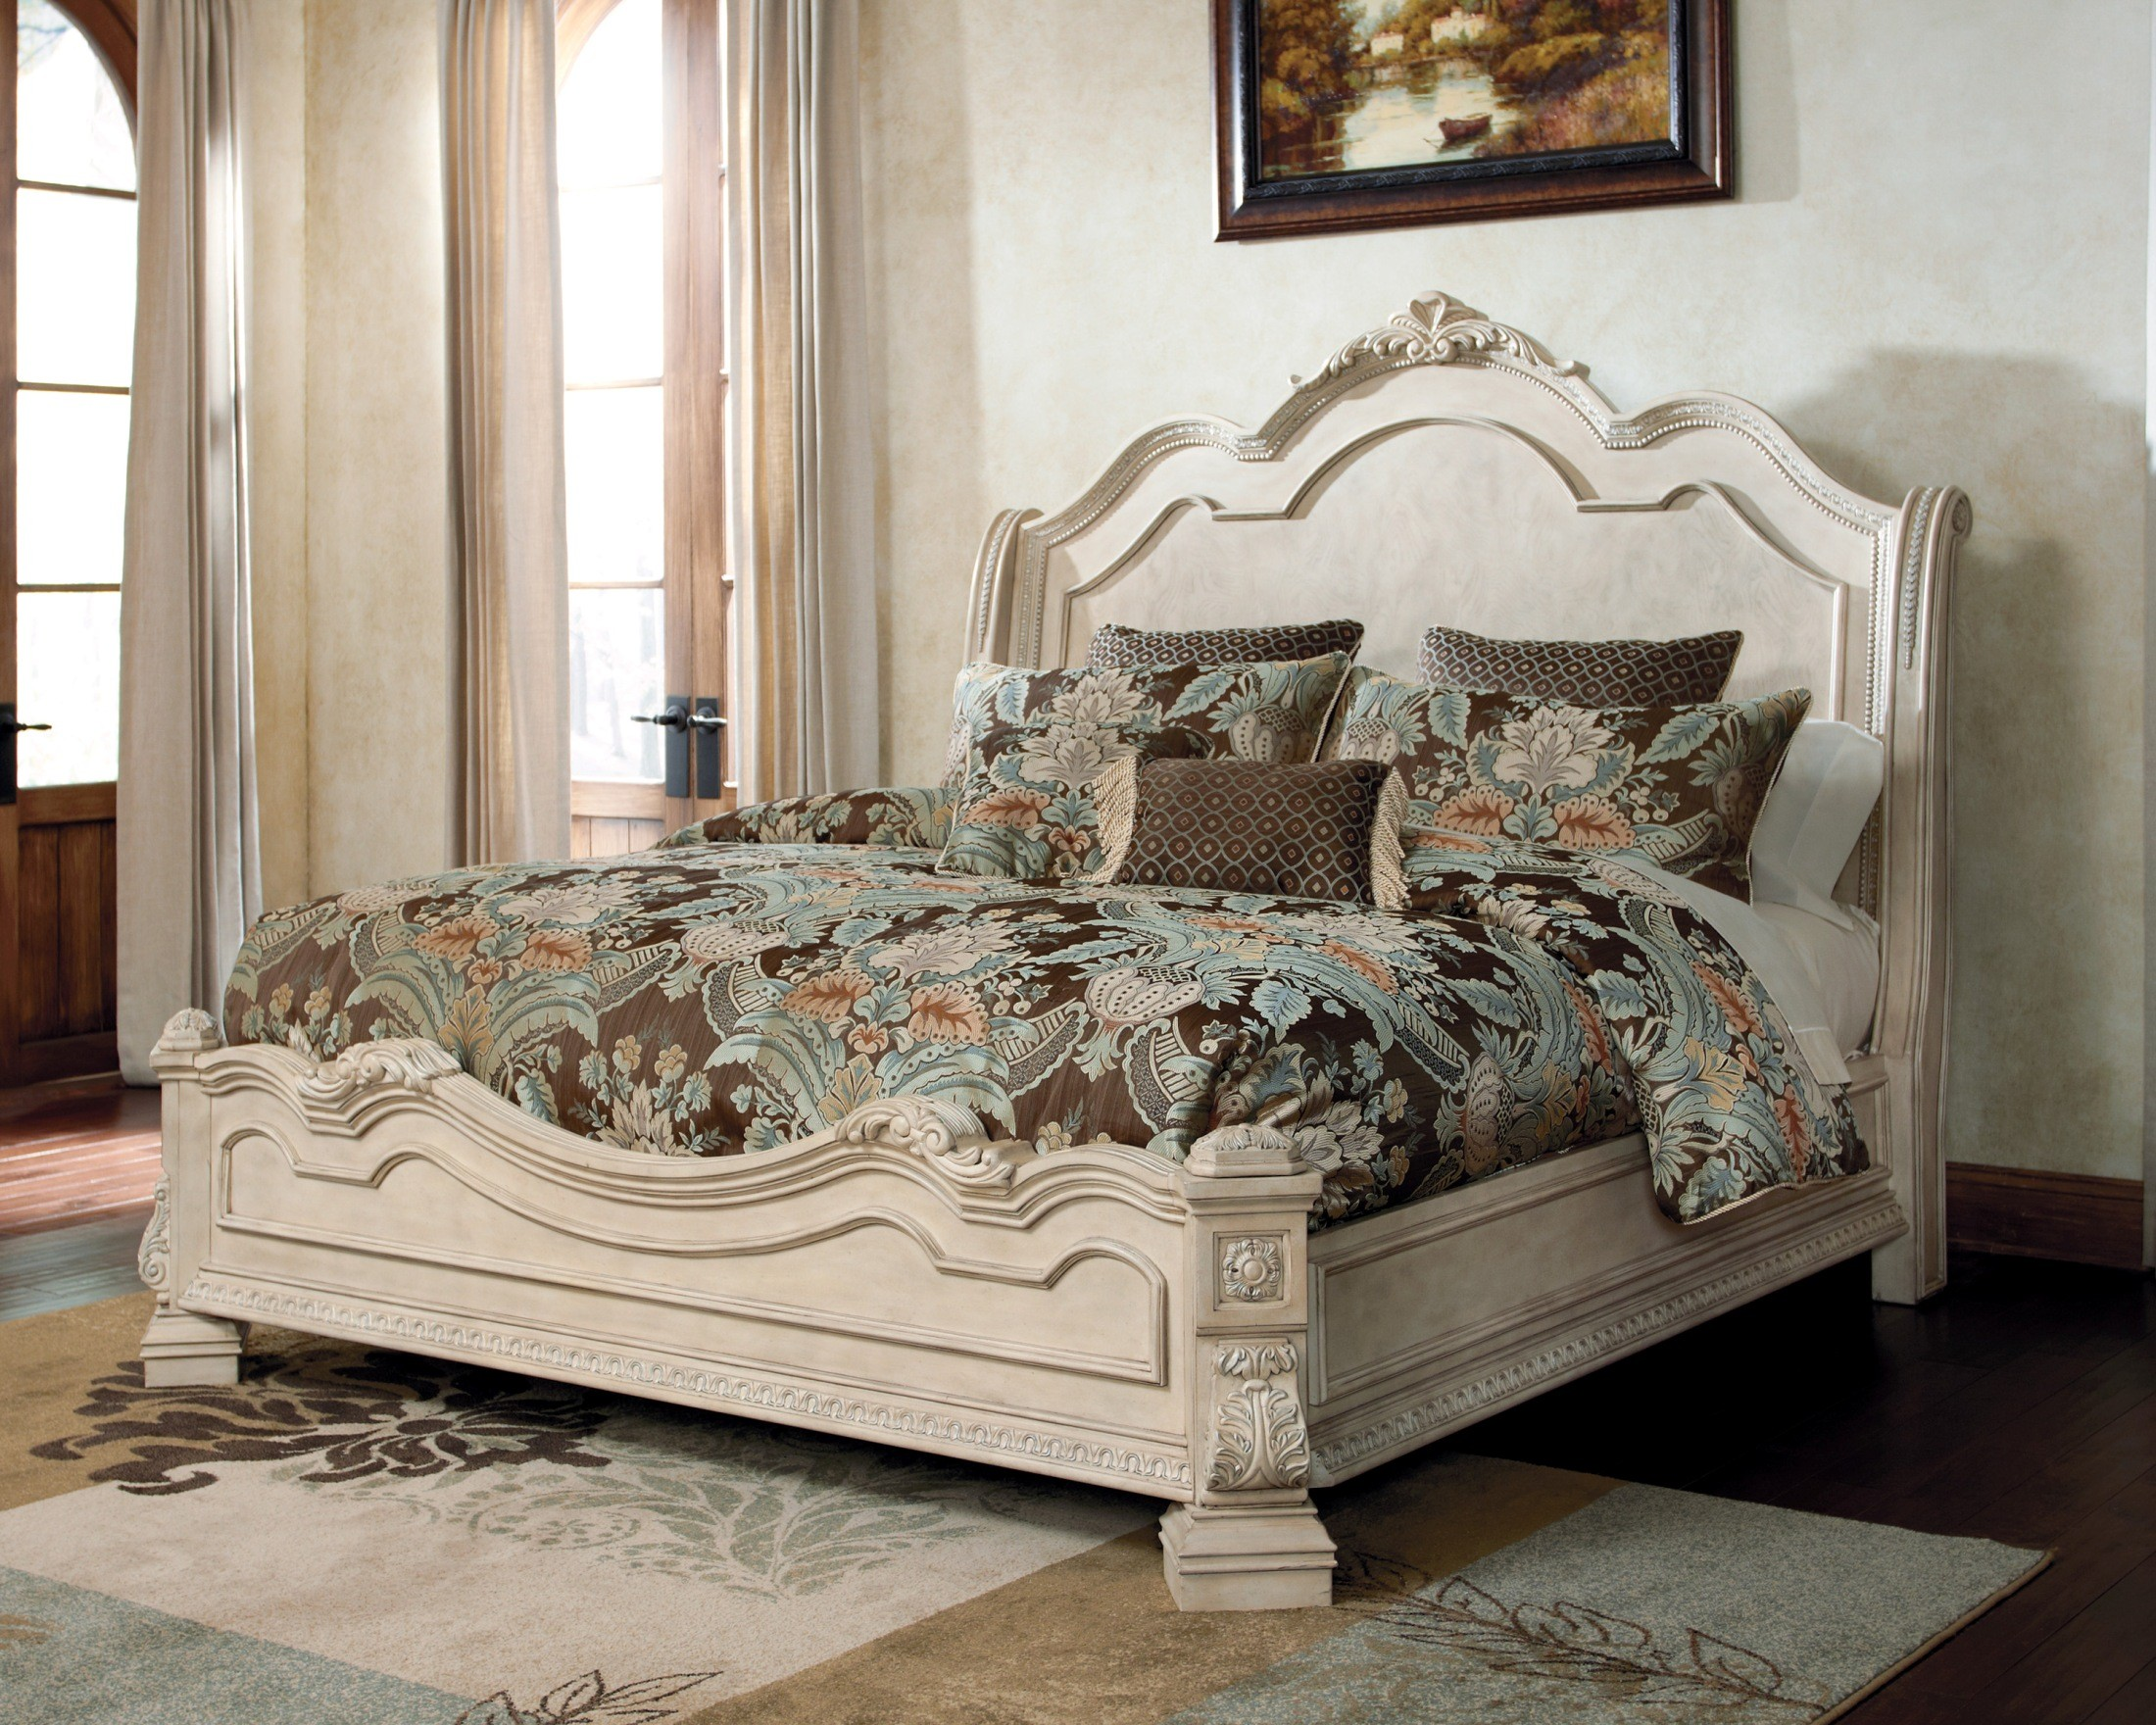 ortanique sleigh bed b707 57 54 96 millennium design by